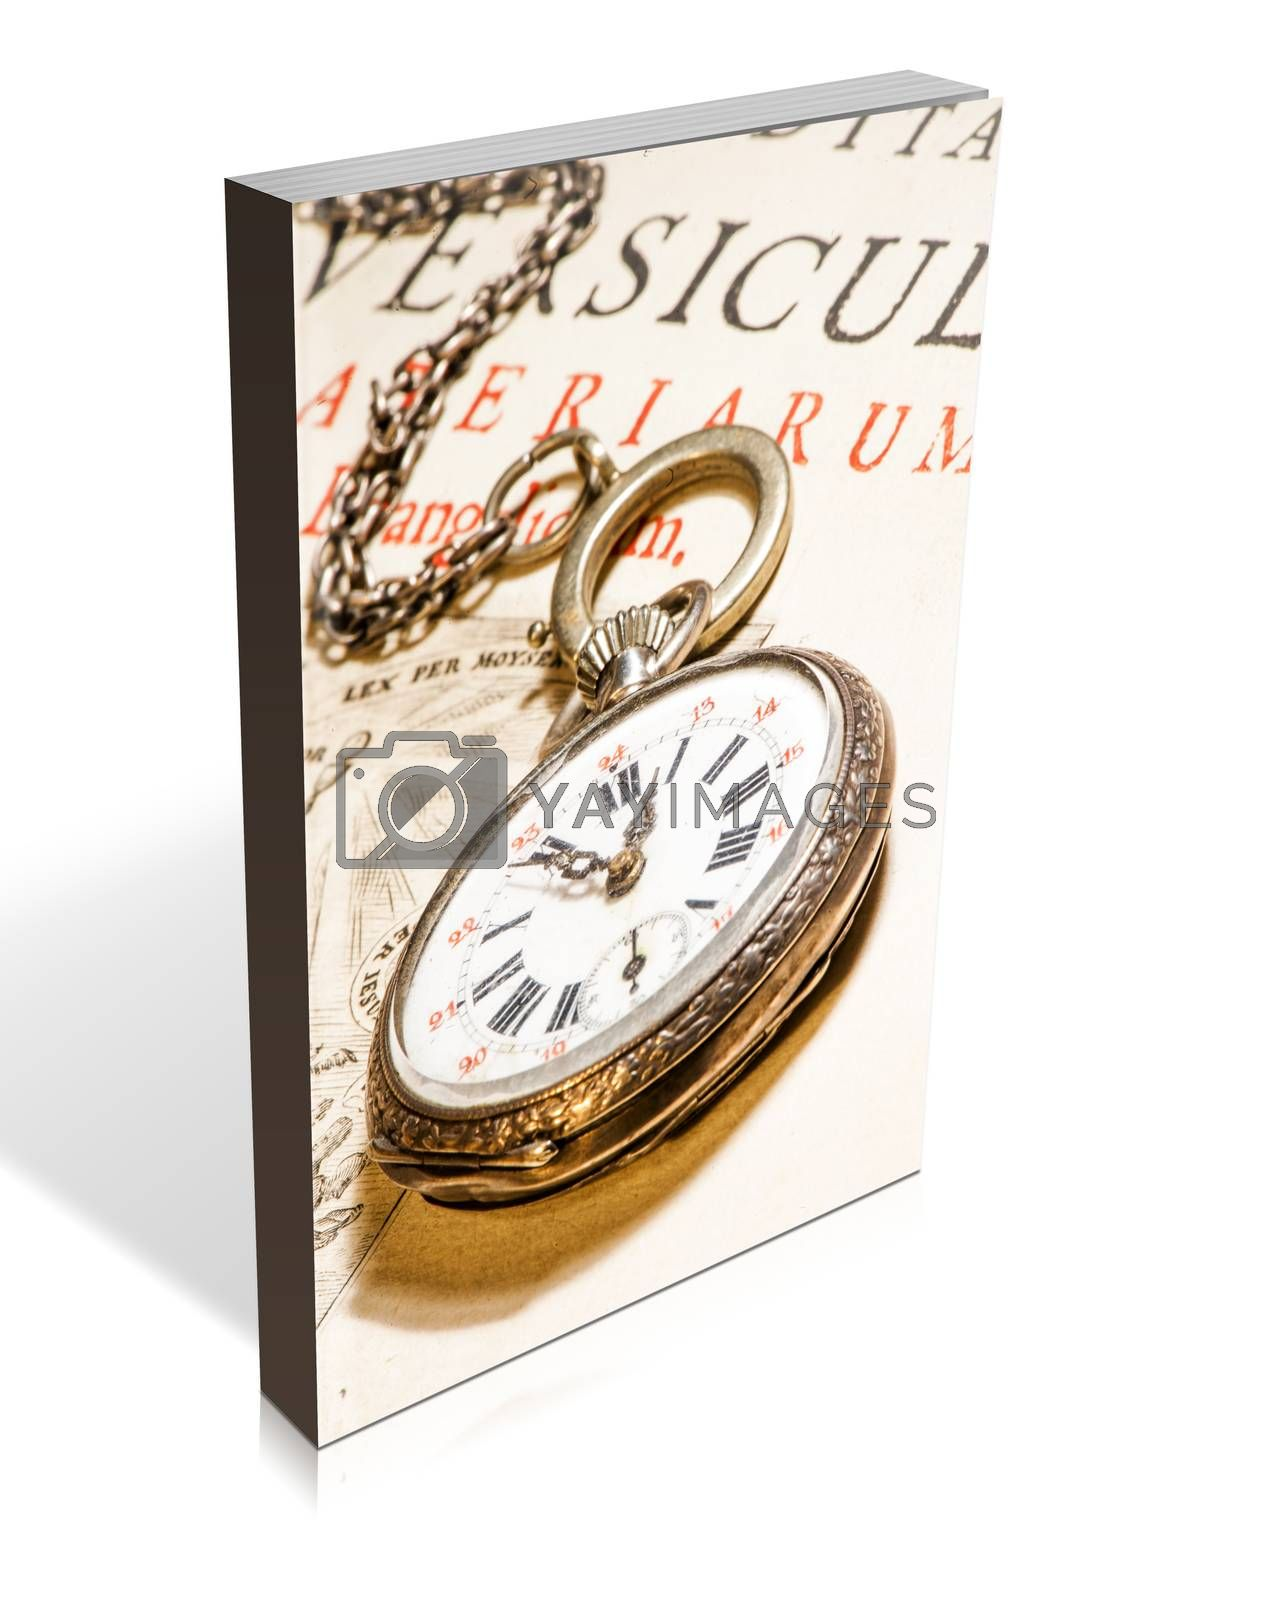 book of antique pocket watch on ancient Bible into Latin